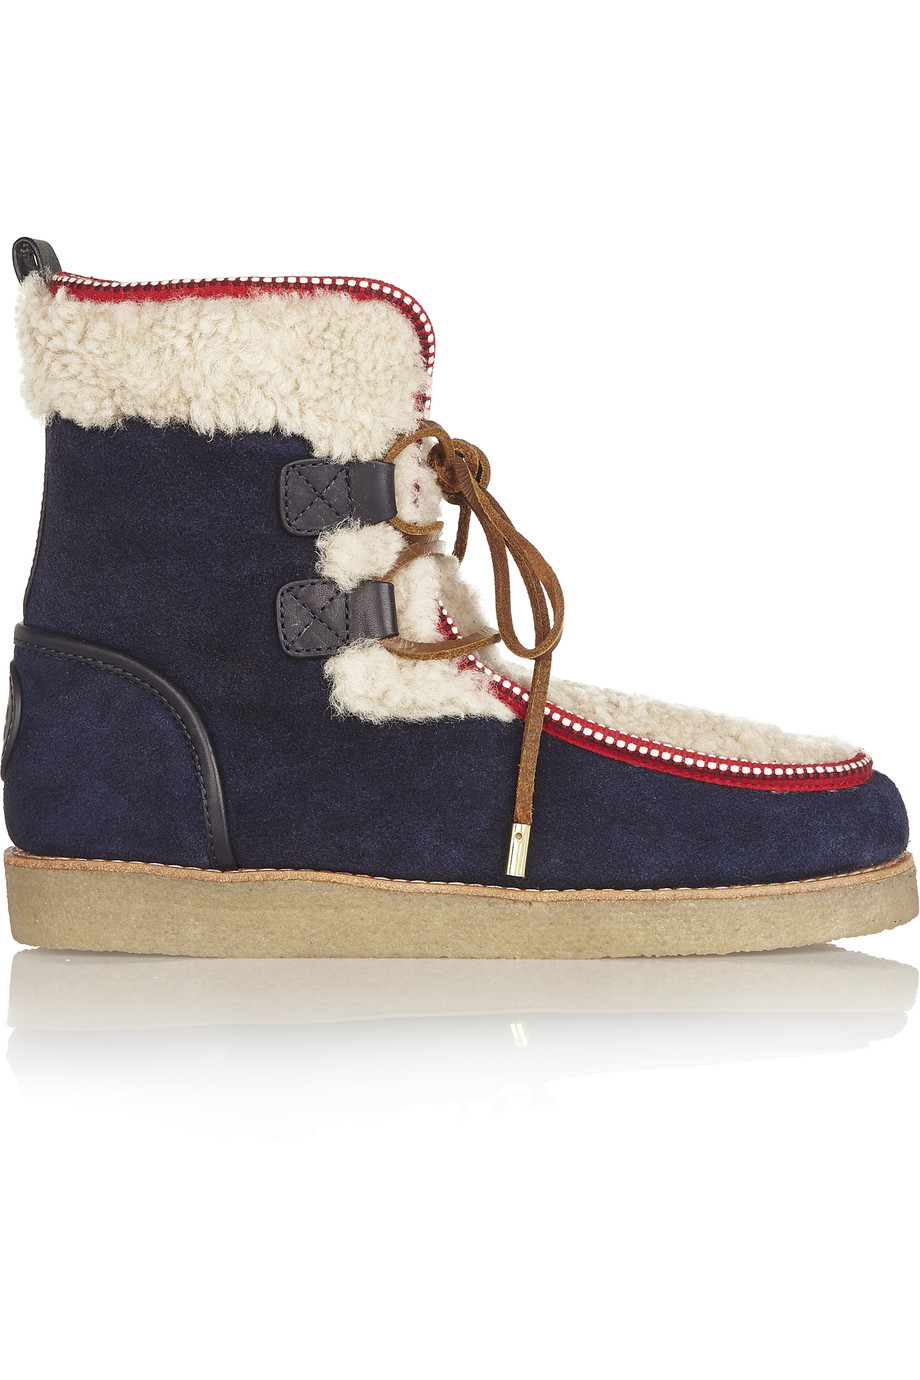 07acb9b9856 Elliot shearling and suede ankle boots